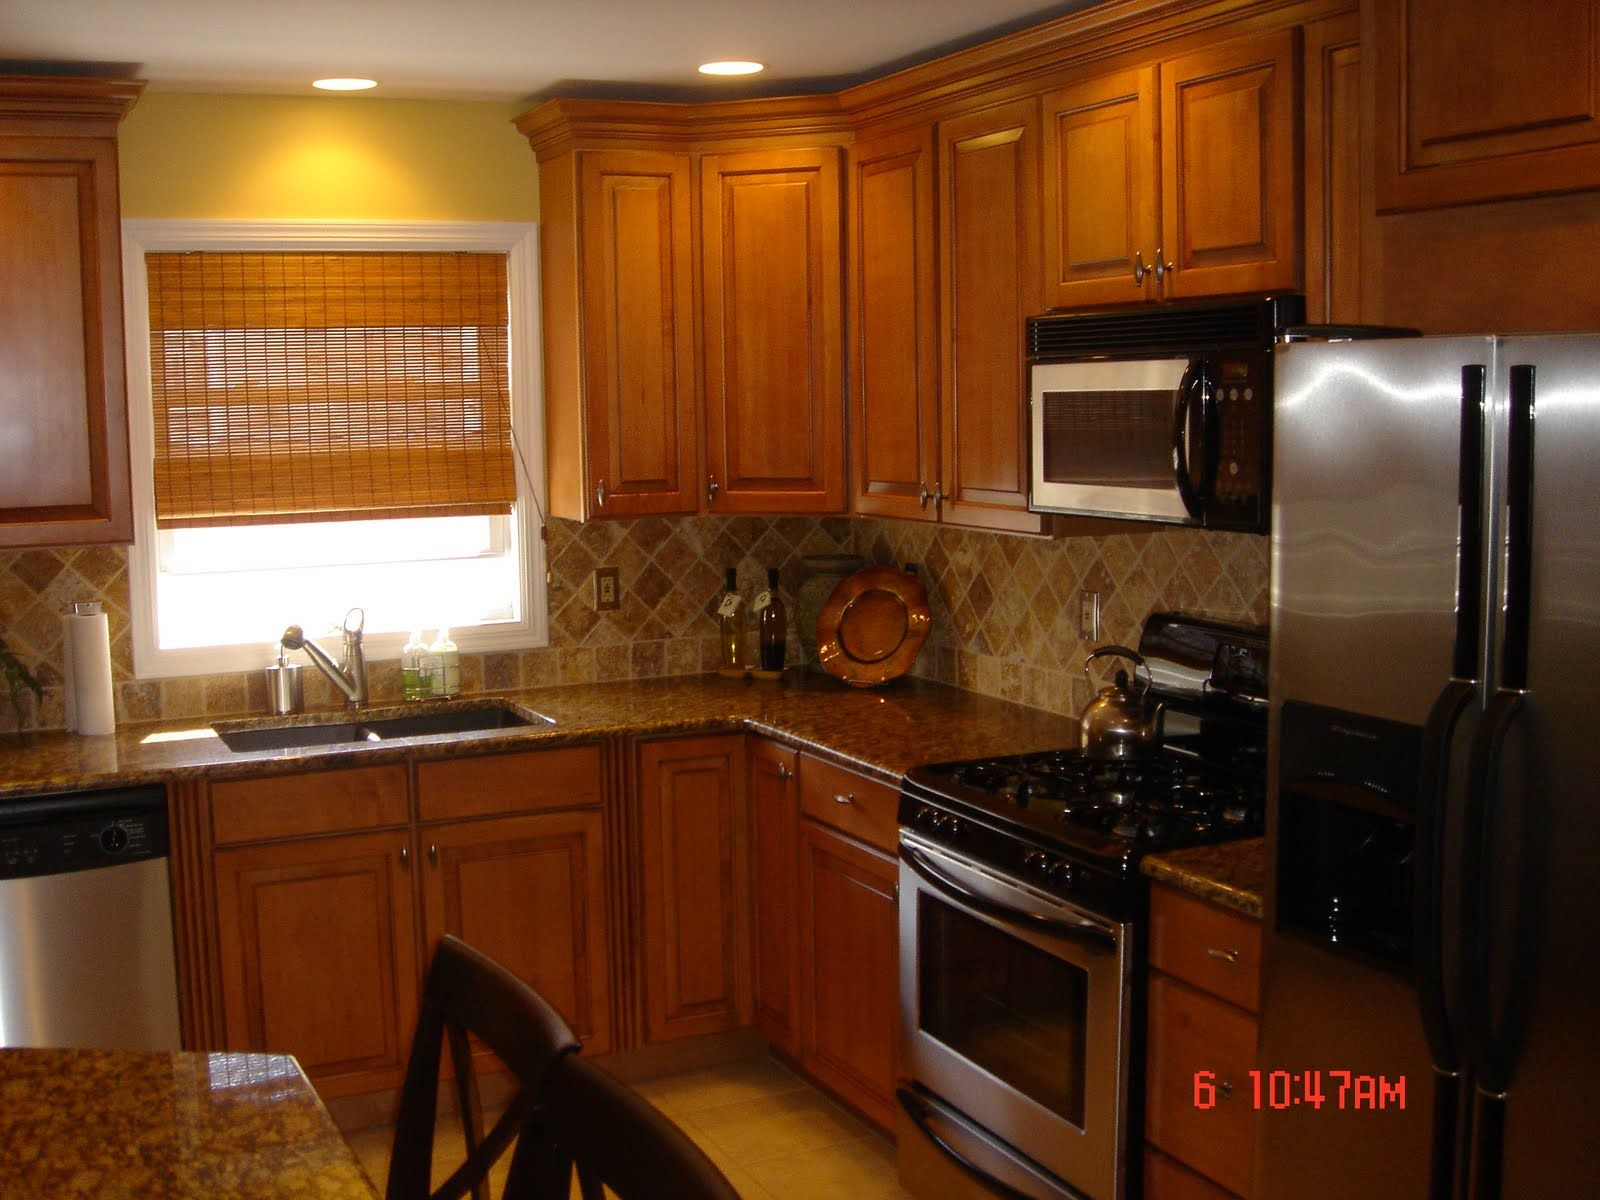 Oak Cabinet Backsplash Home Design Blog Cheap Kitchen Cabinets Oak Cabinets Honey Oak Cabinets